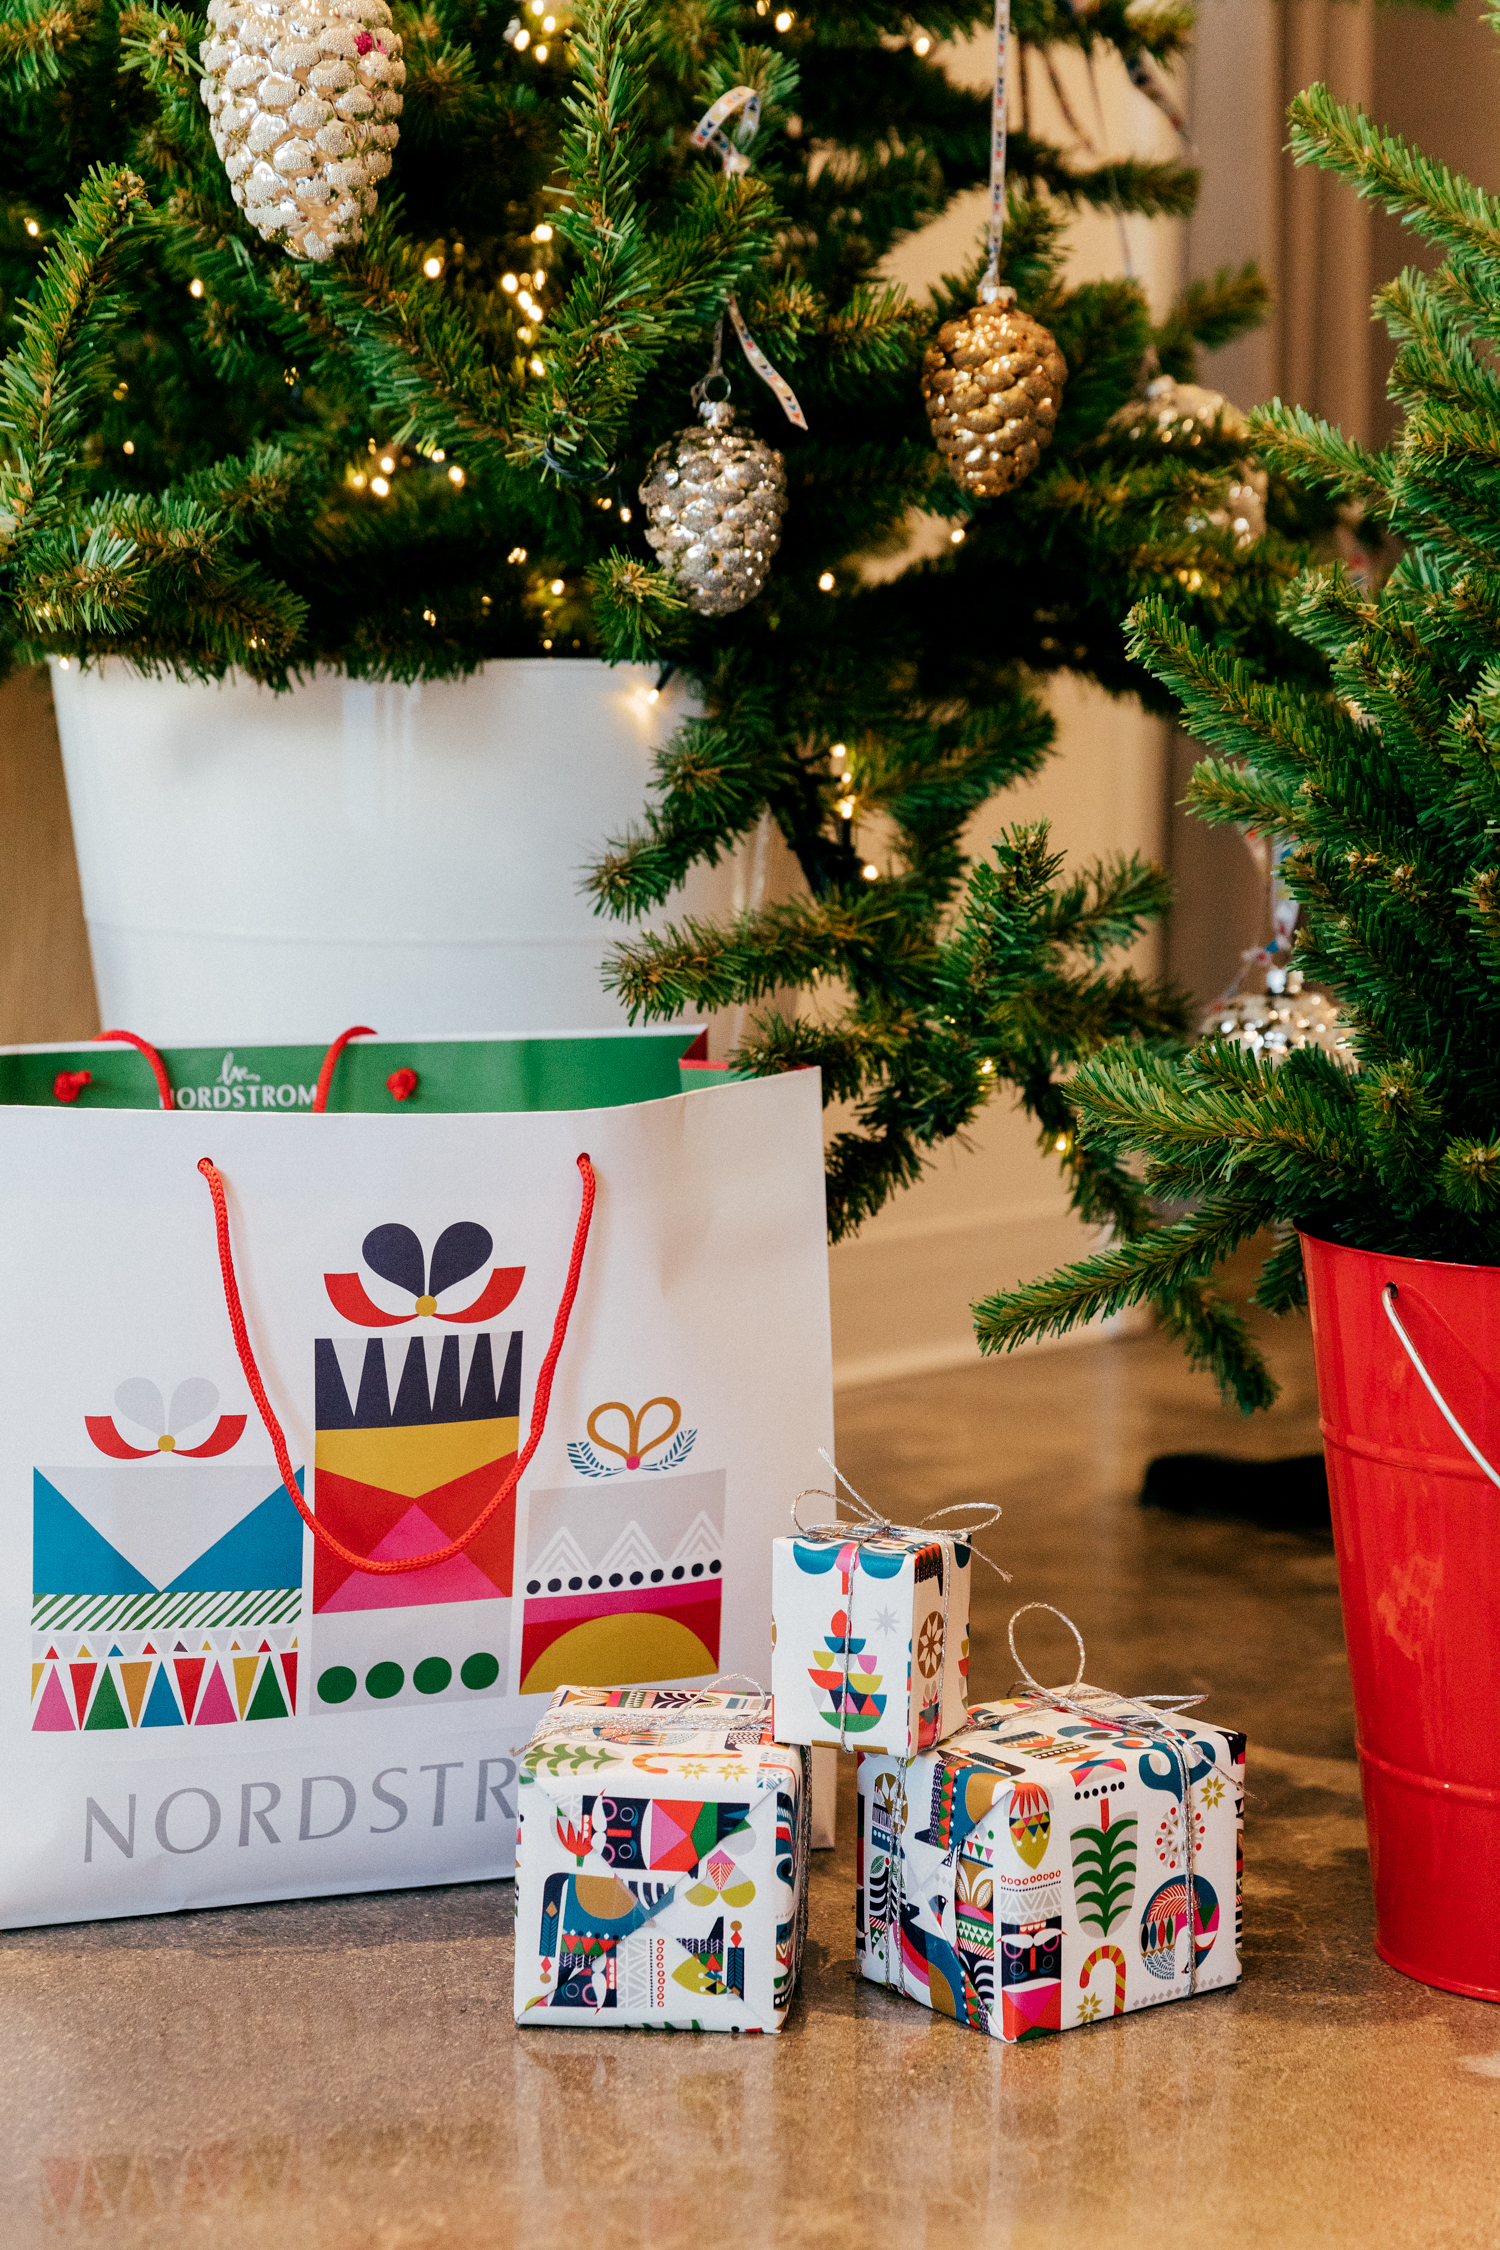 Nordstrom Local in Brentwood - Great for Last Minute Gifts